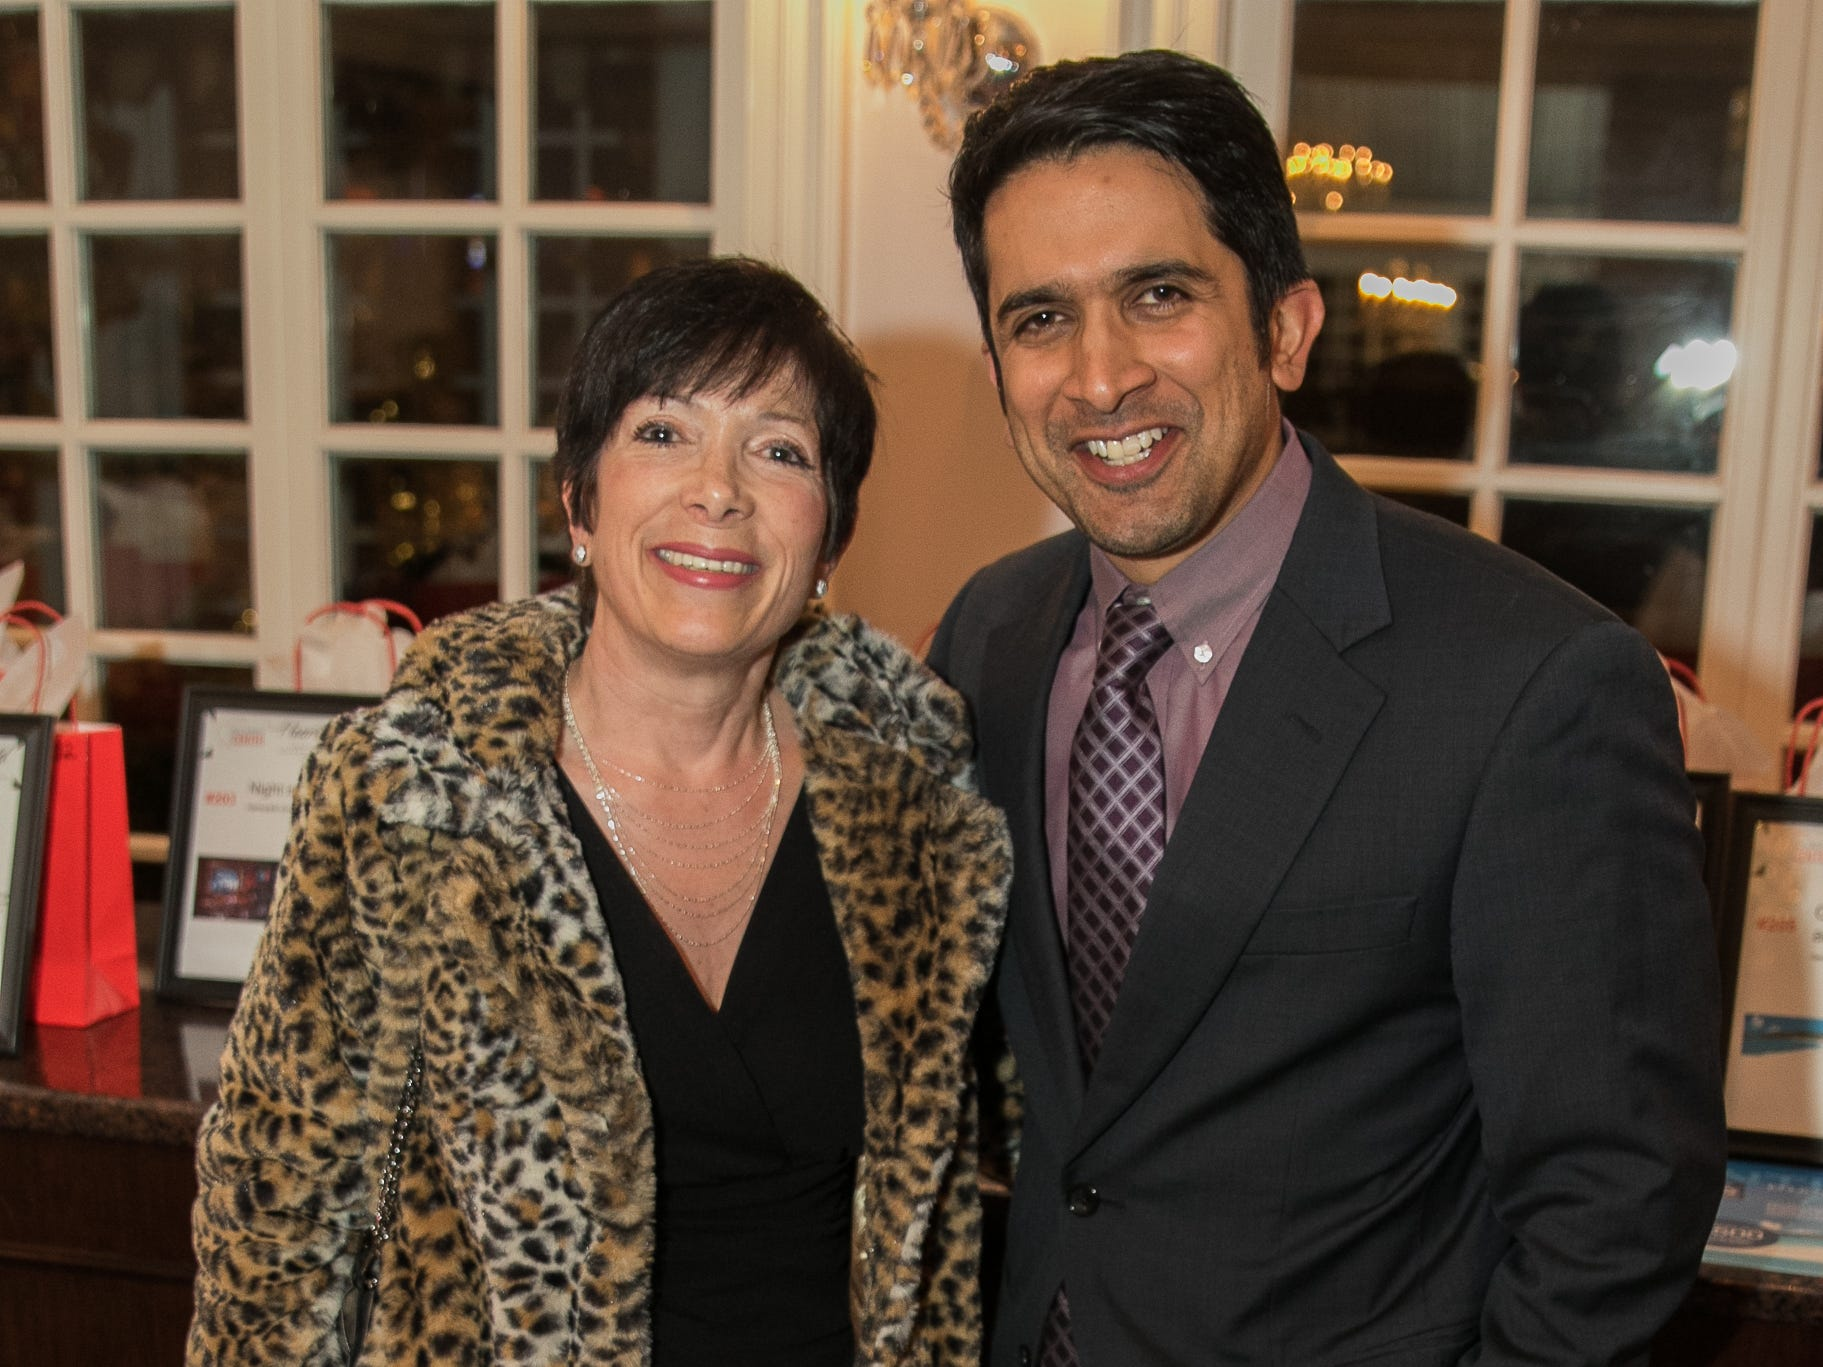 Marlene Ceragno, Shourn Chakravarti. The Bergen Volunteer Center celebrated its 10th anniversary of the Bergen LEADS program at The Hearts of Gold Dinner and Auction at the Stony Hill Inn in Hackensack. 11/08/2018